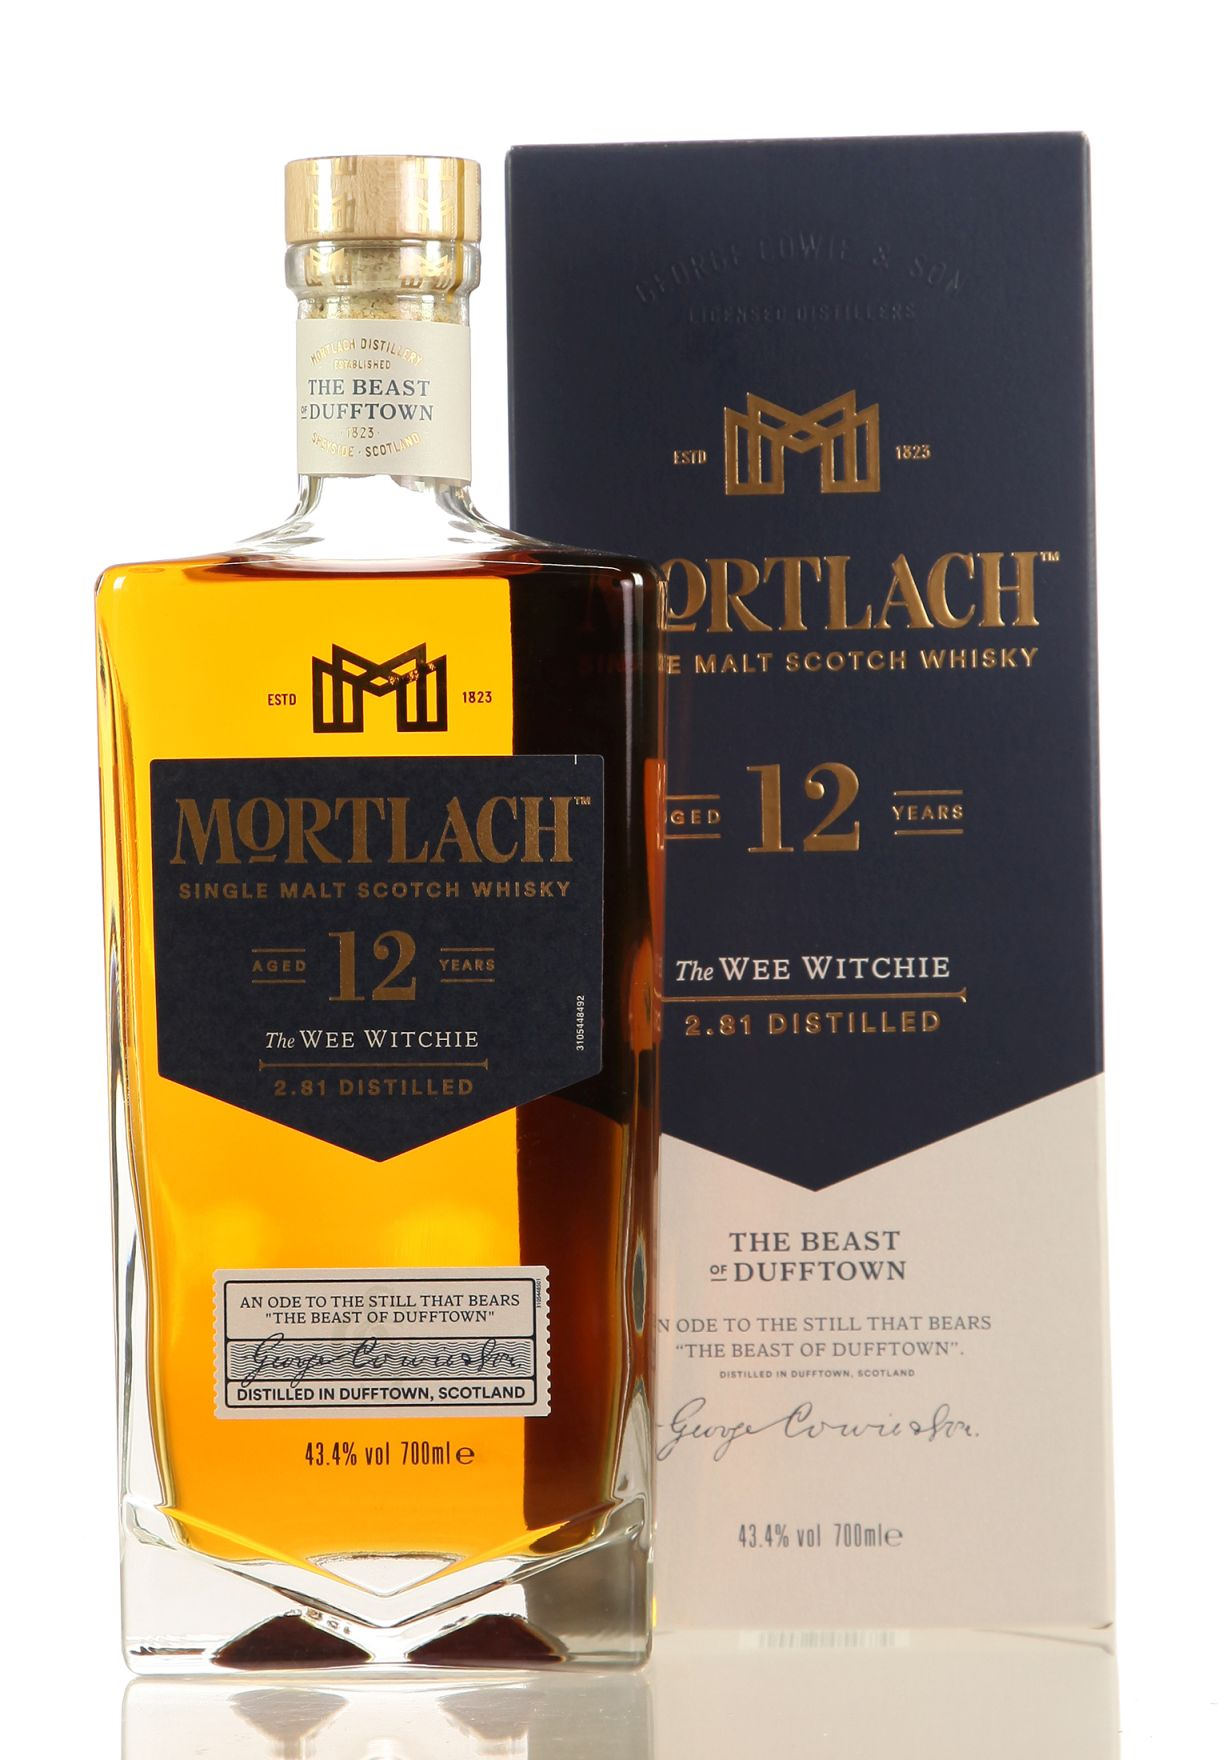 Mortlach The Wee Witchie